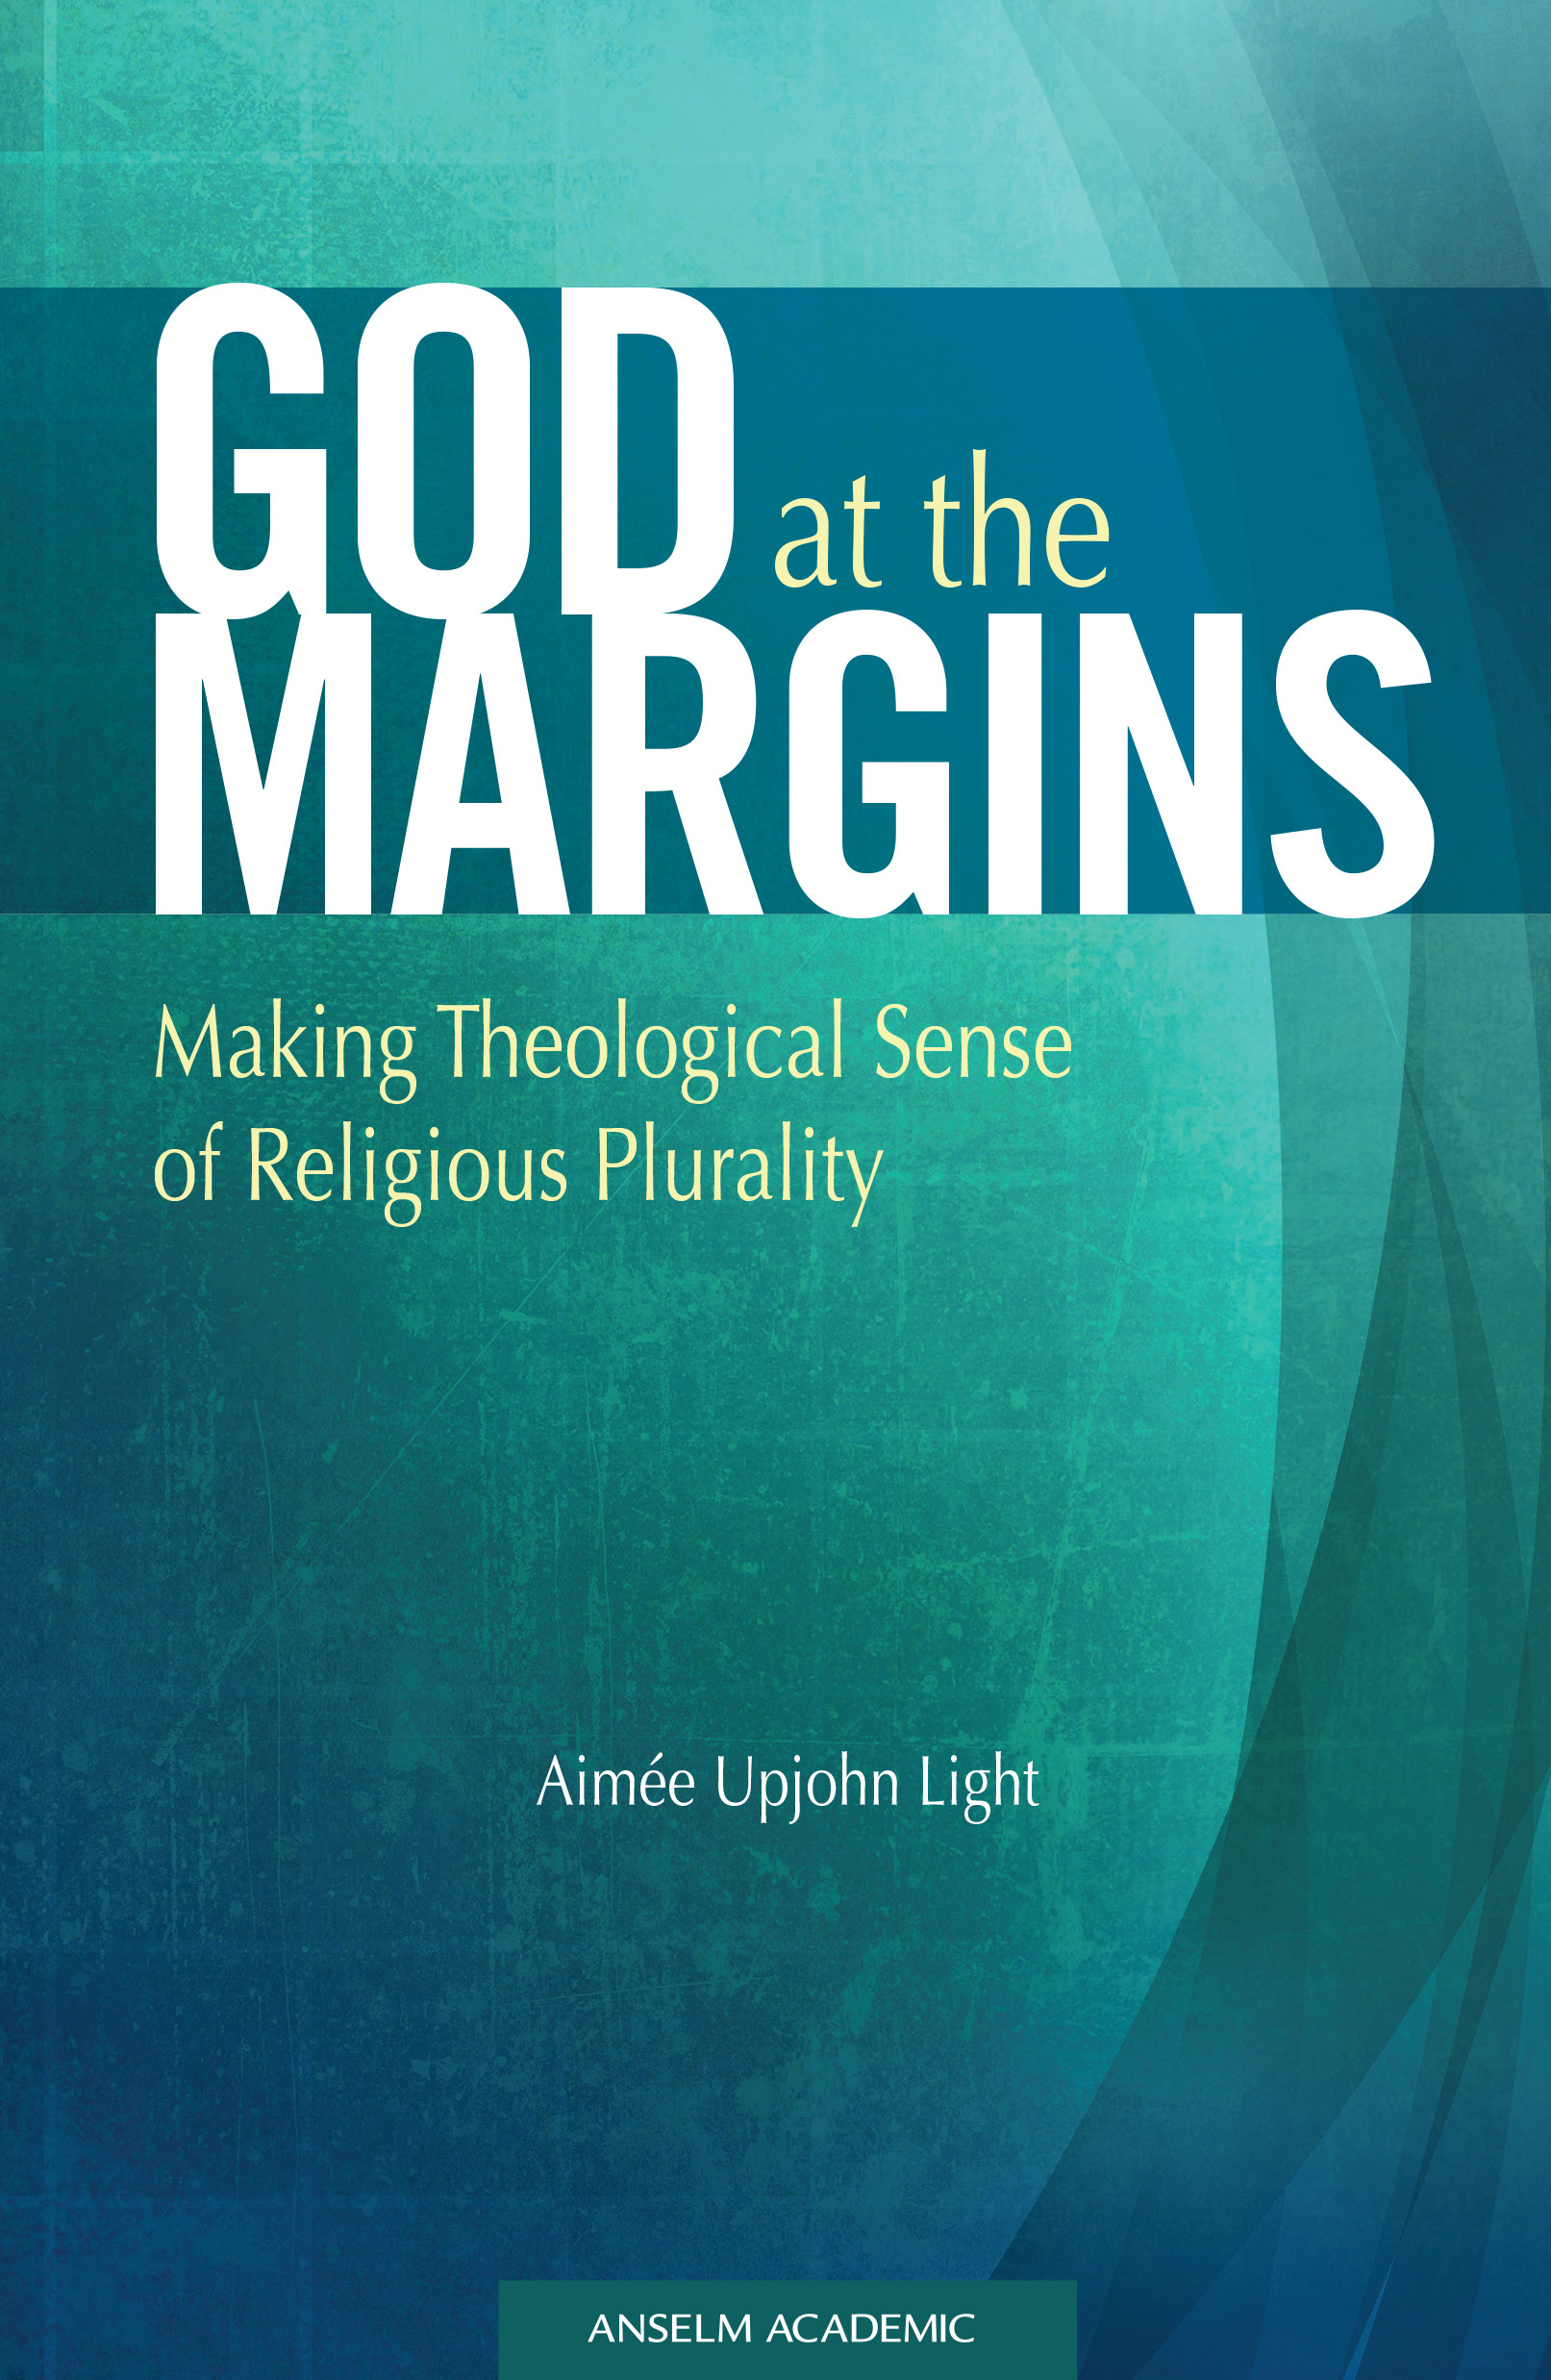 God at the Margins: Making Theological Sense of Religious Plurality